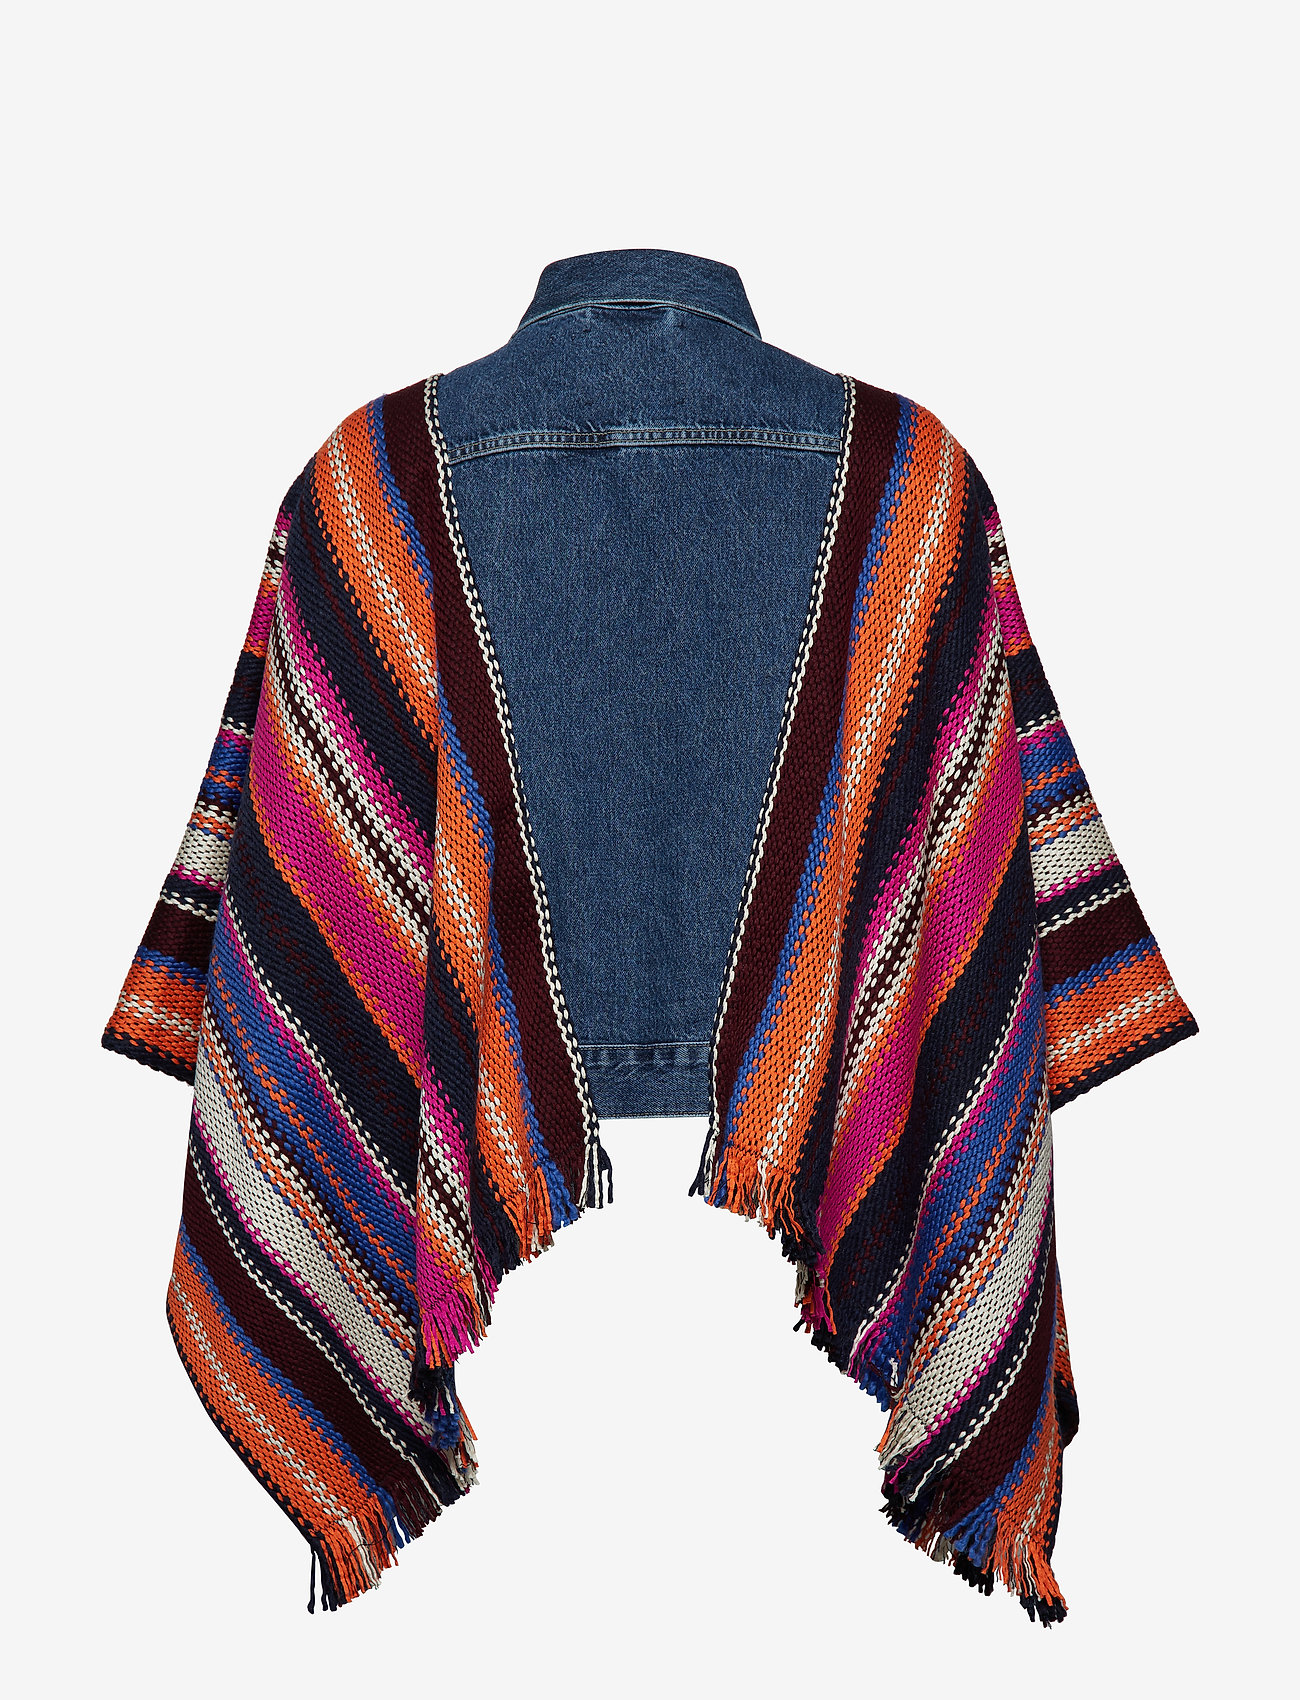 Lmc Trucker Poncho Lmc Summer (Multi-color) - Levi's Made & Crafted mkCiat